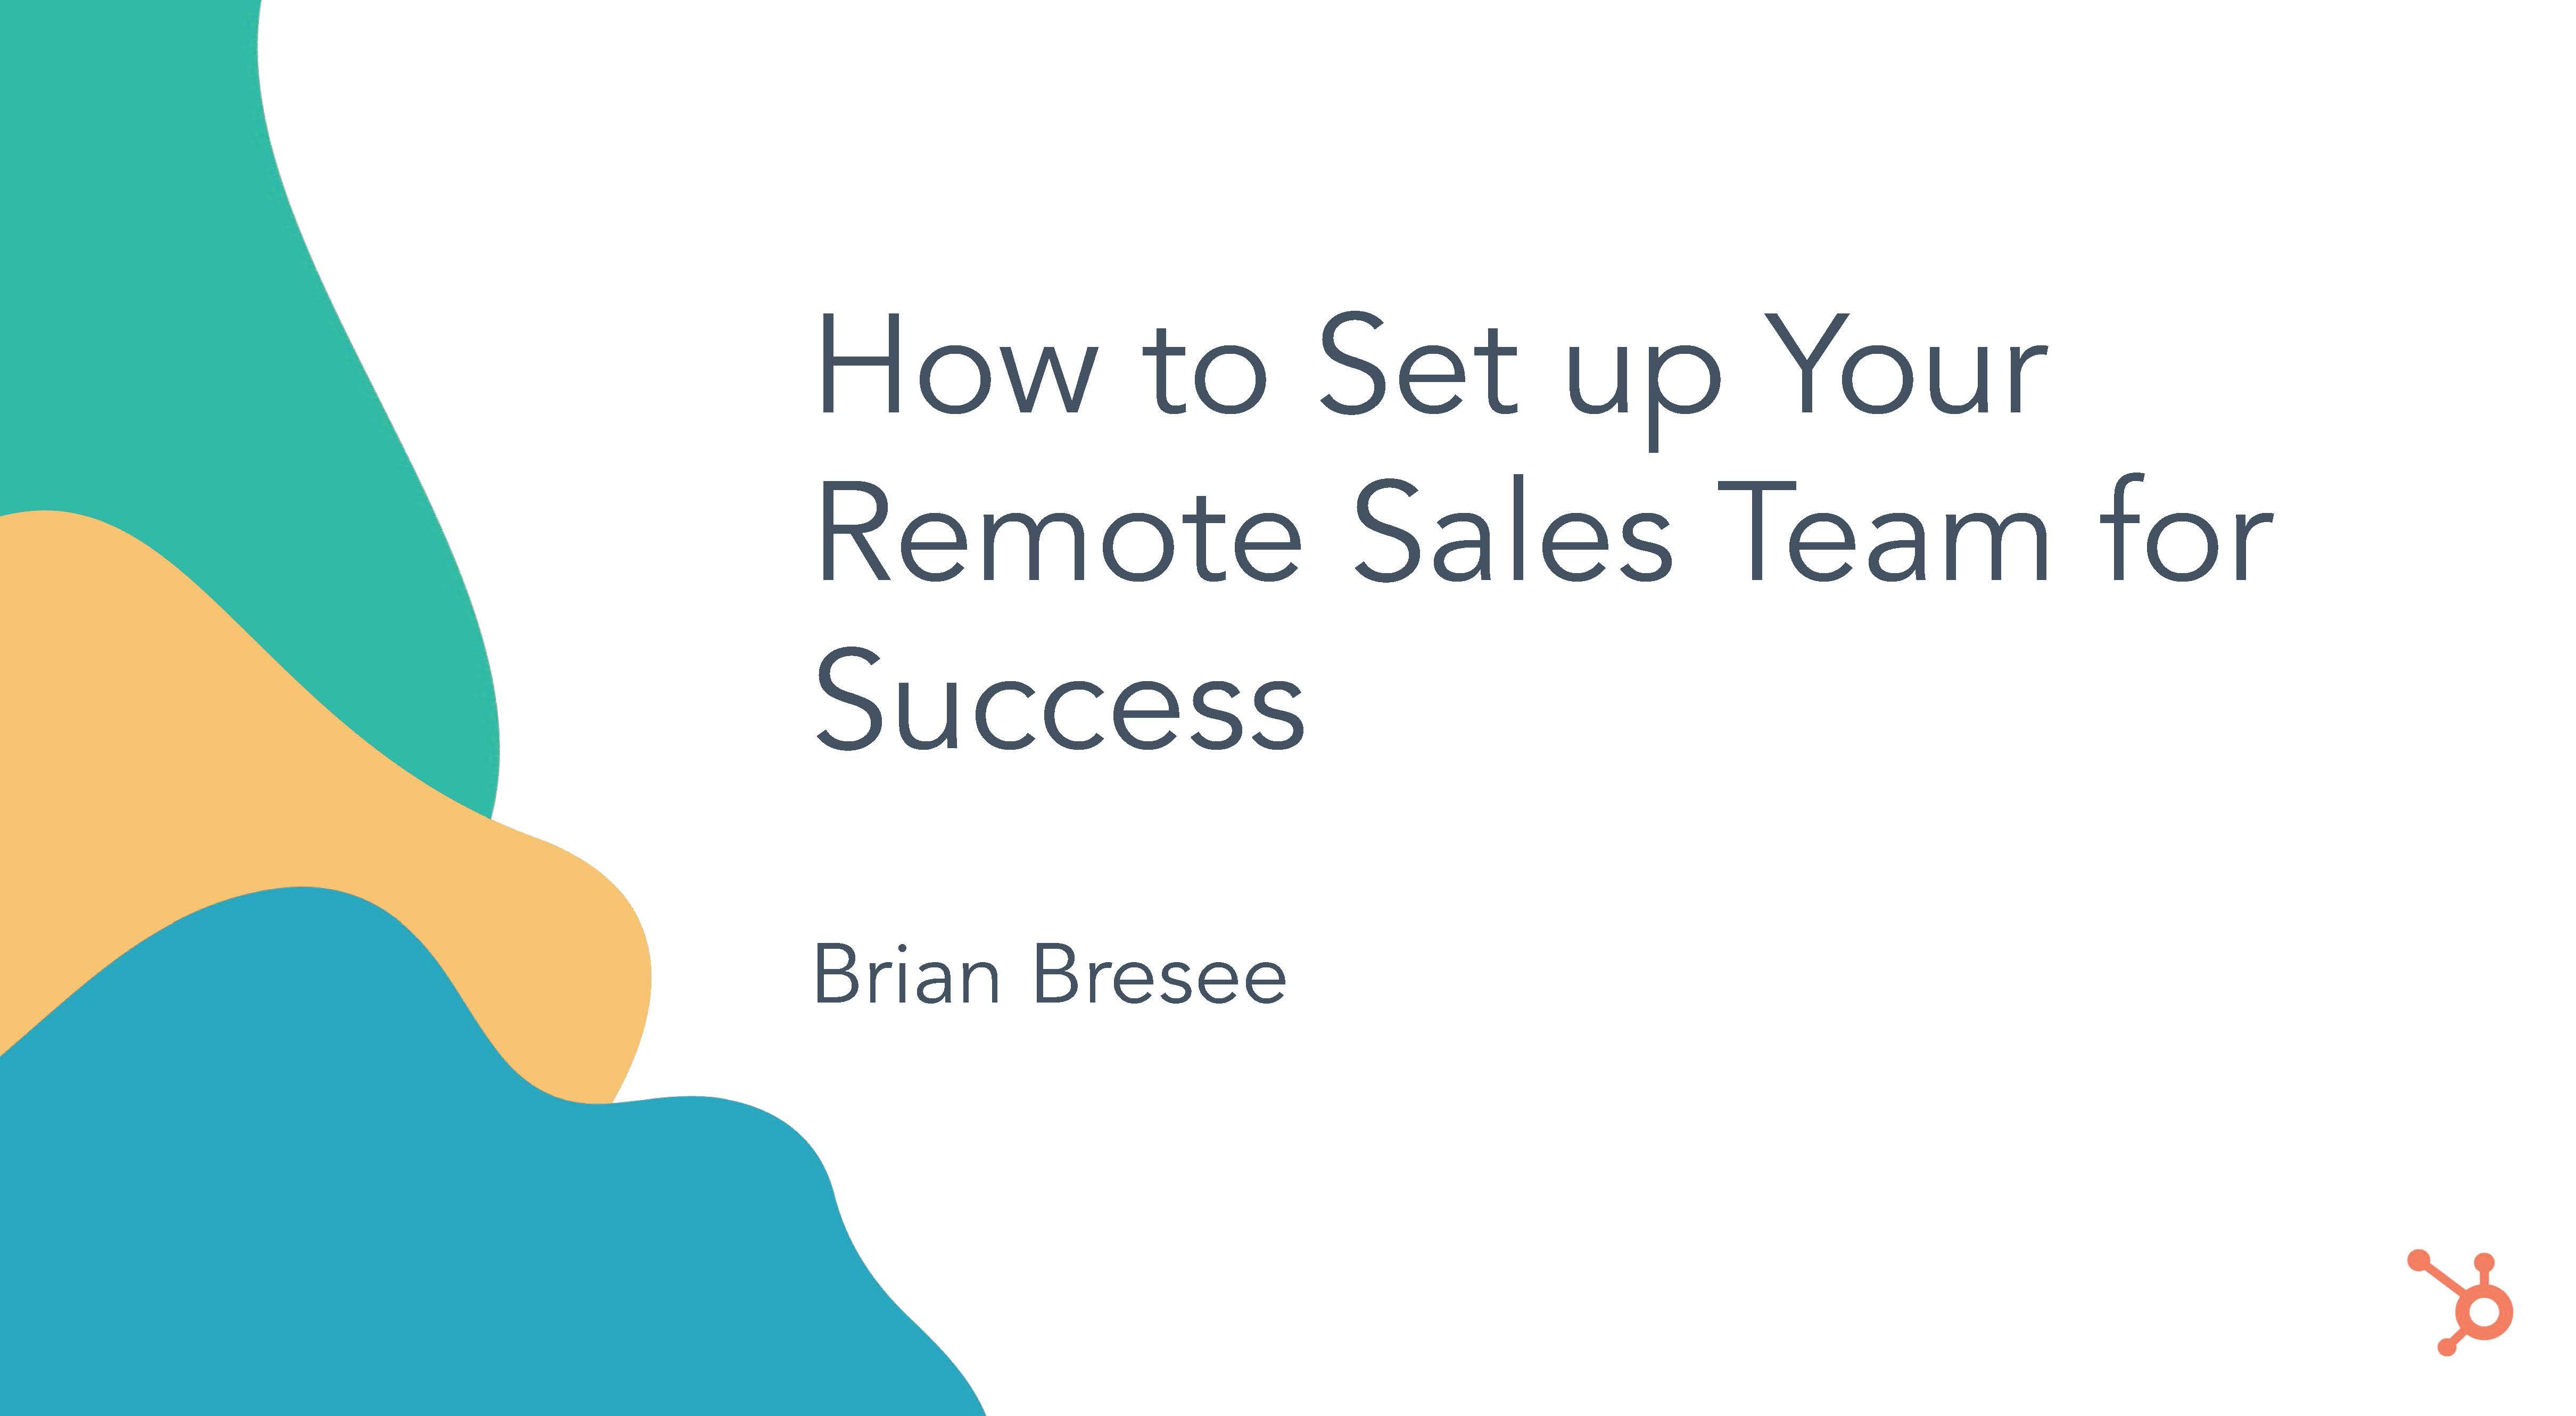 How to Run a Remote Sales Team_Page_05-1